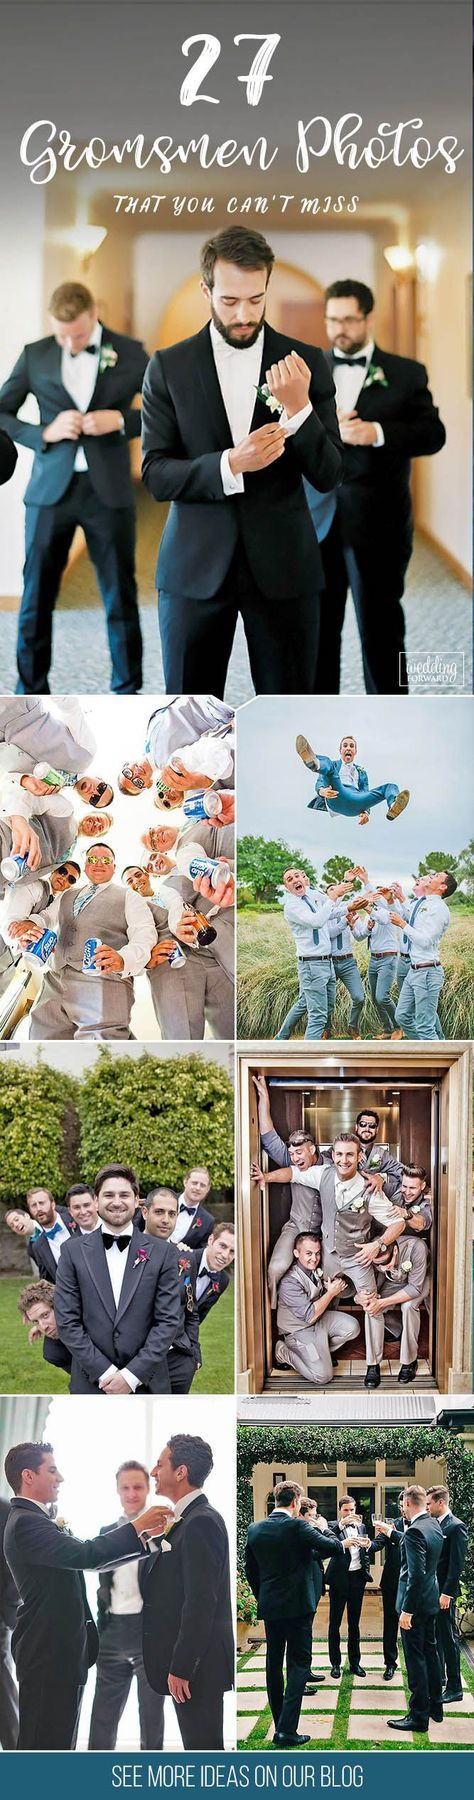 52 Superior Groomsmen Images You Cannot Miss